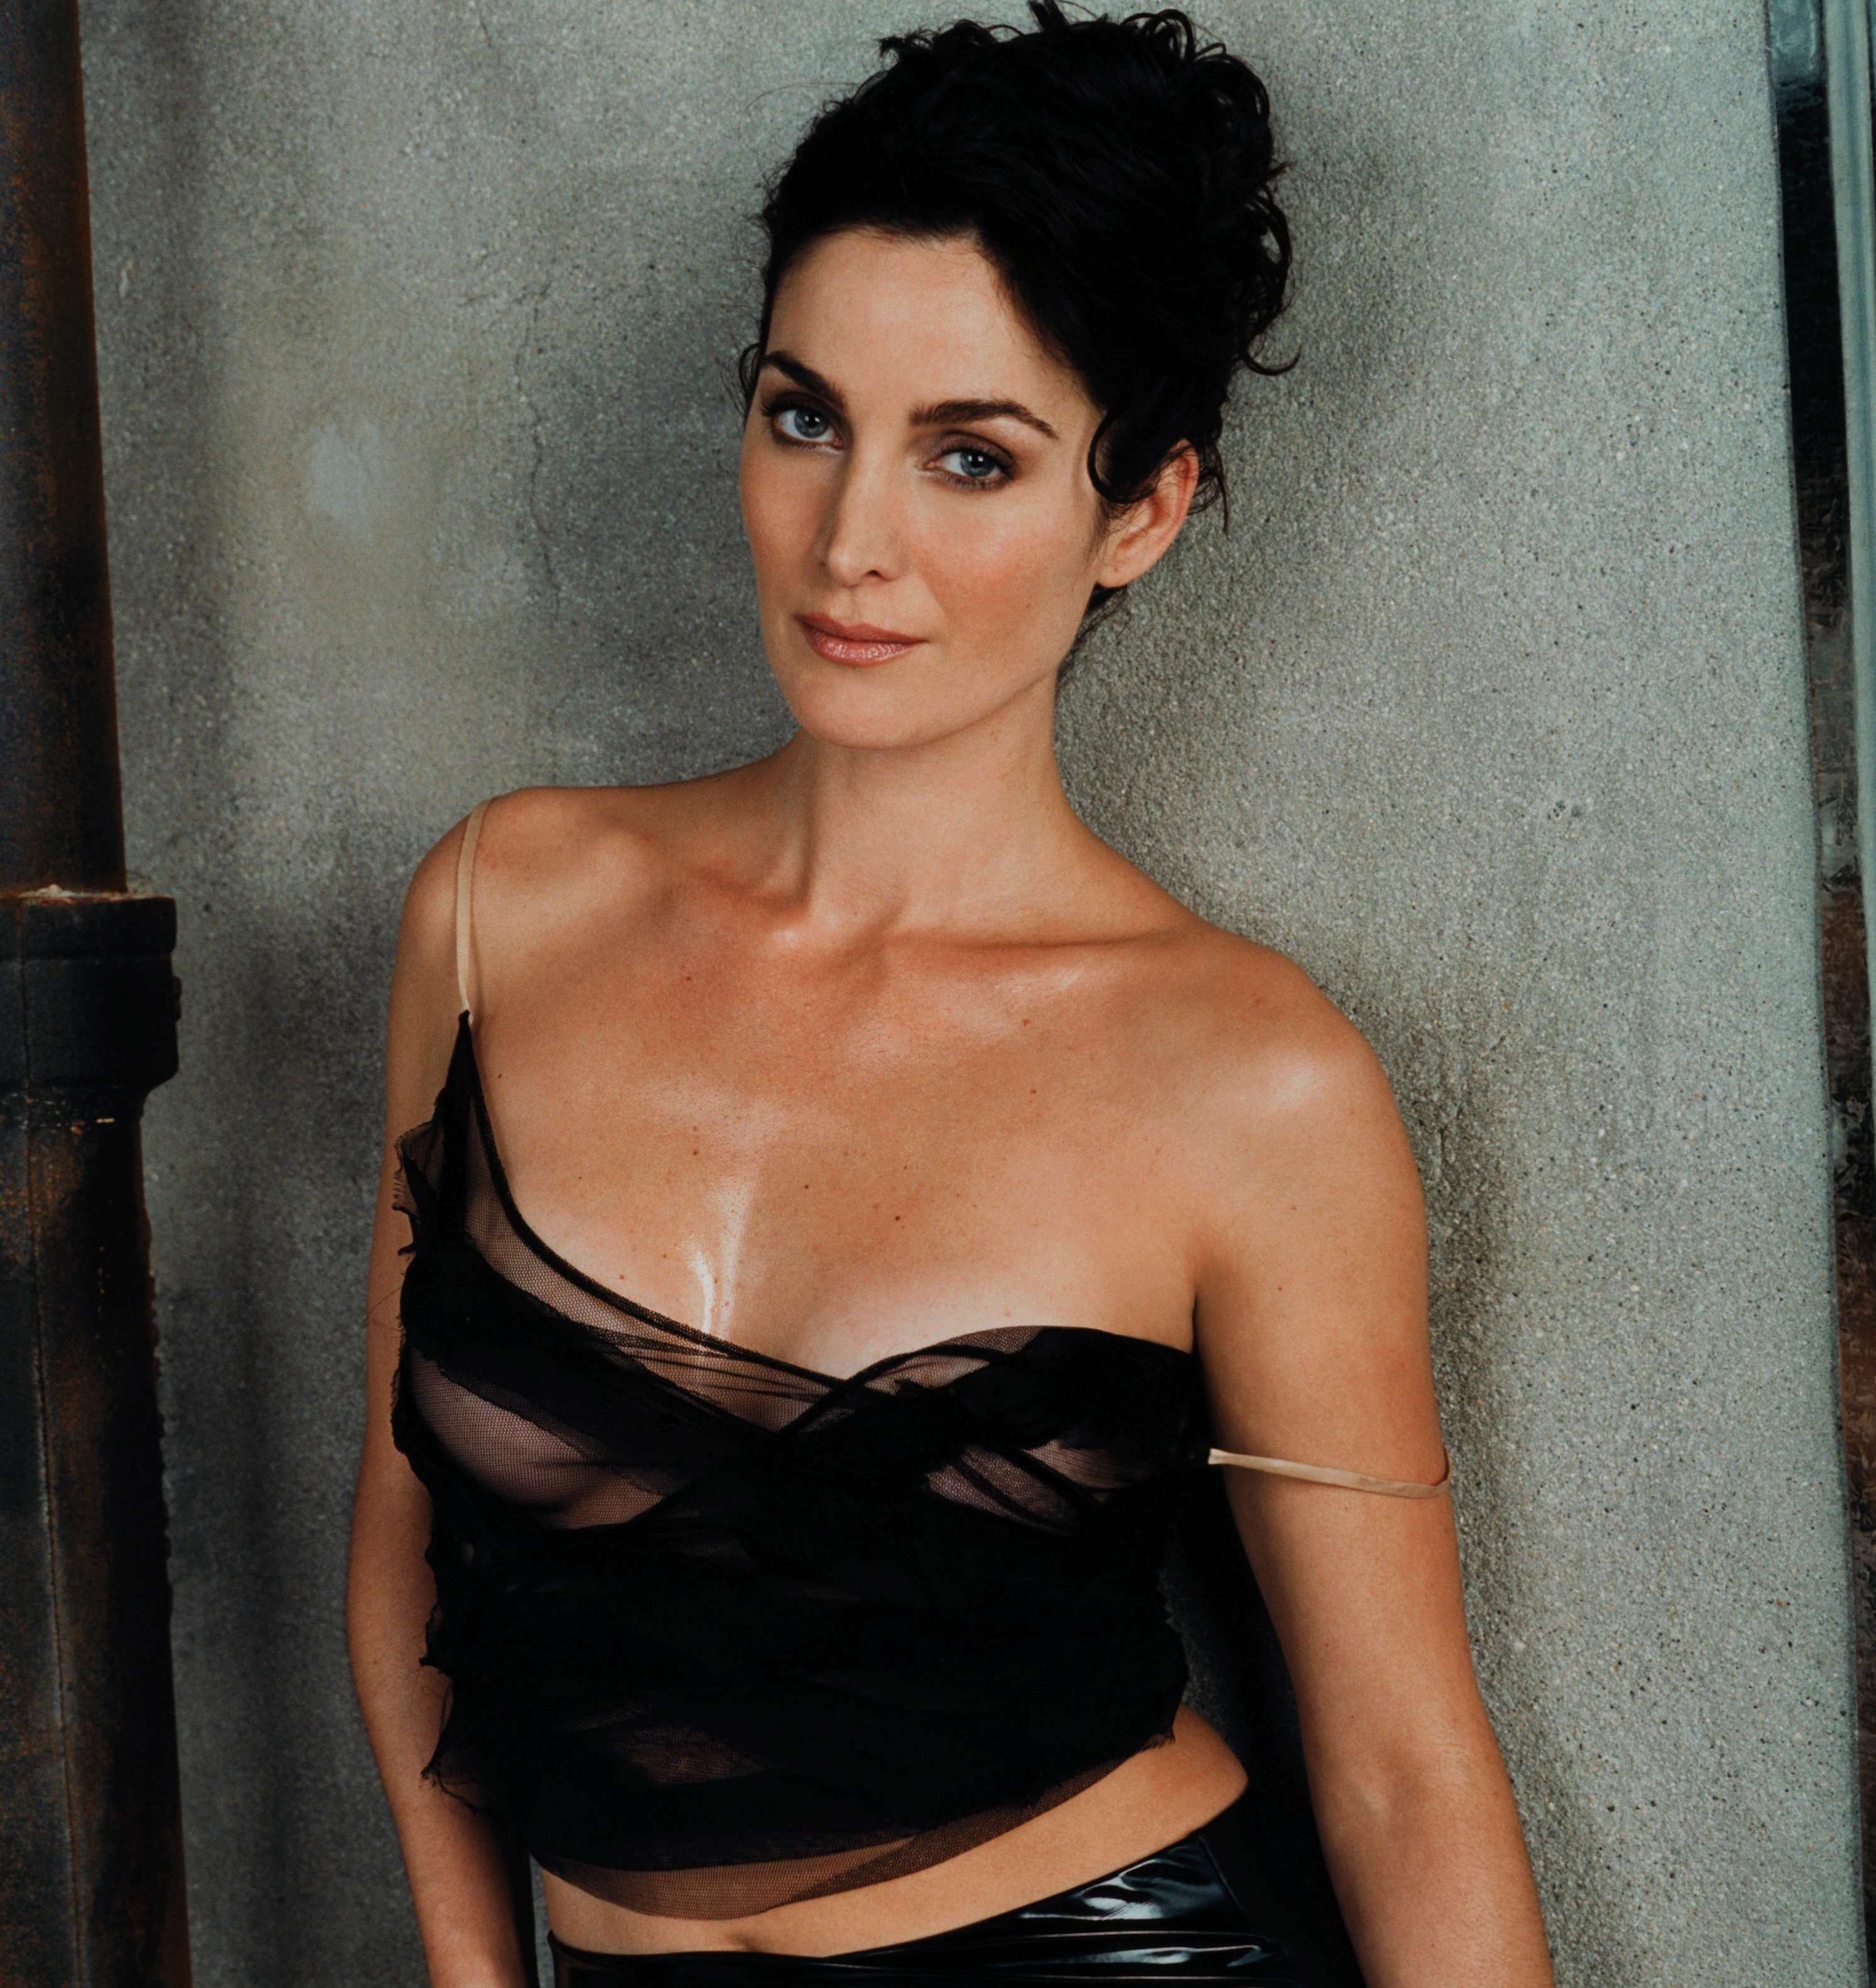 4 Carrie Anne Moss 20 Unreal Facts You Never Knew About The Matrix